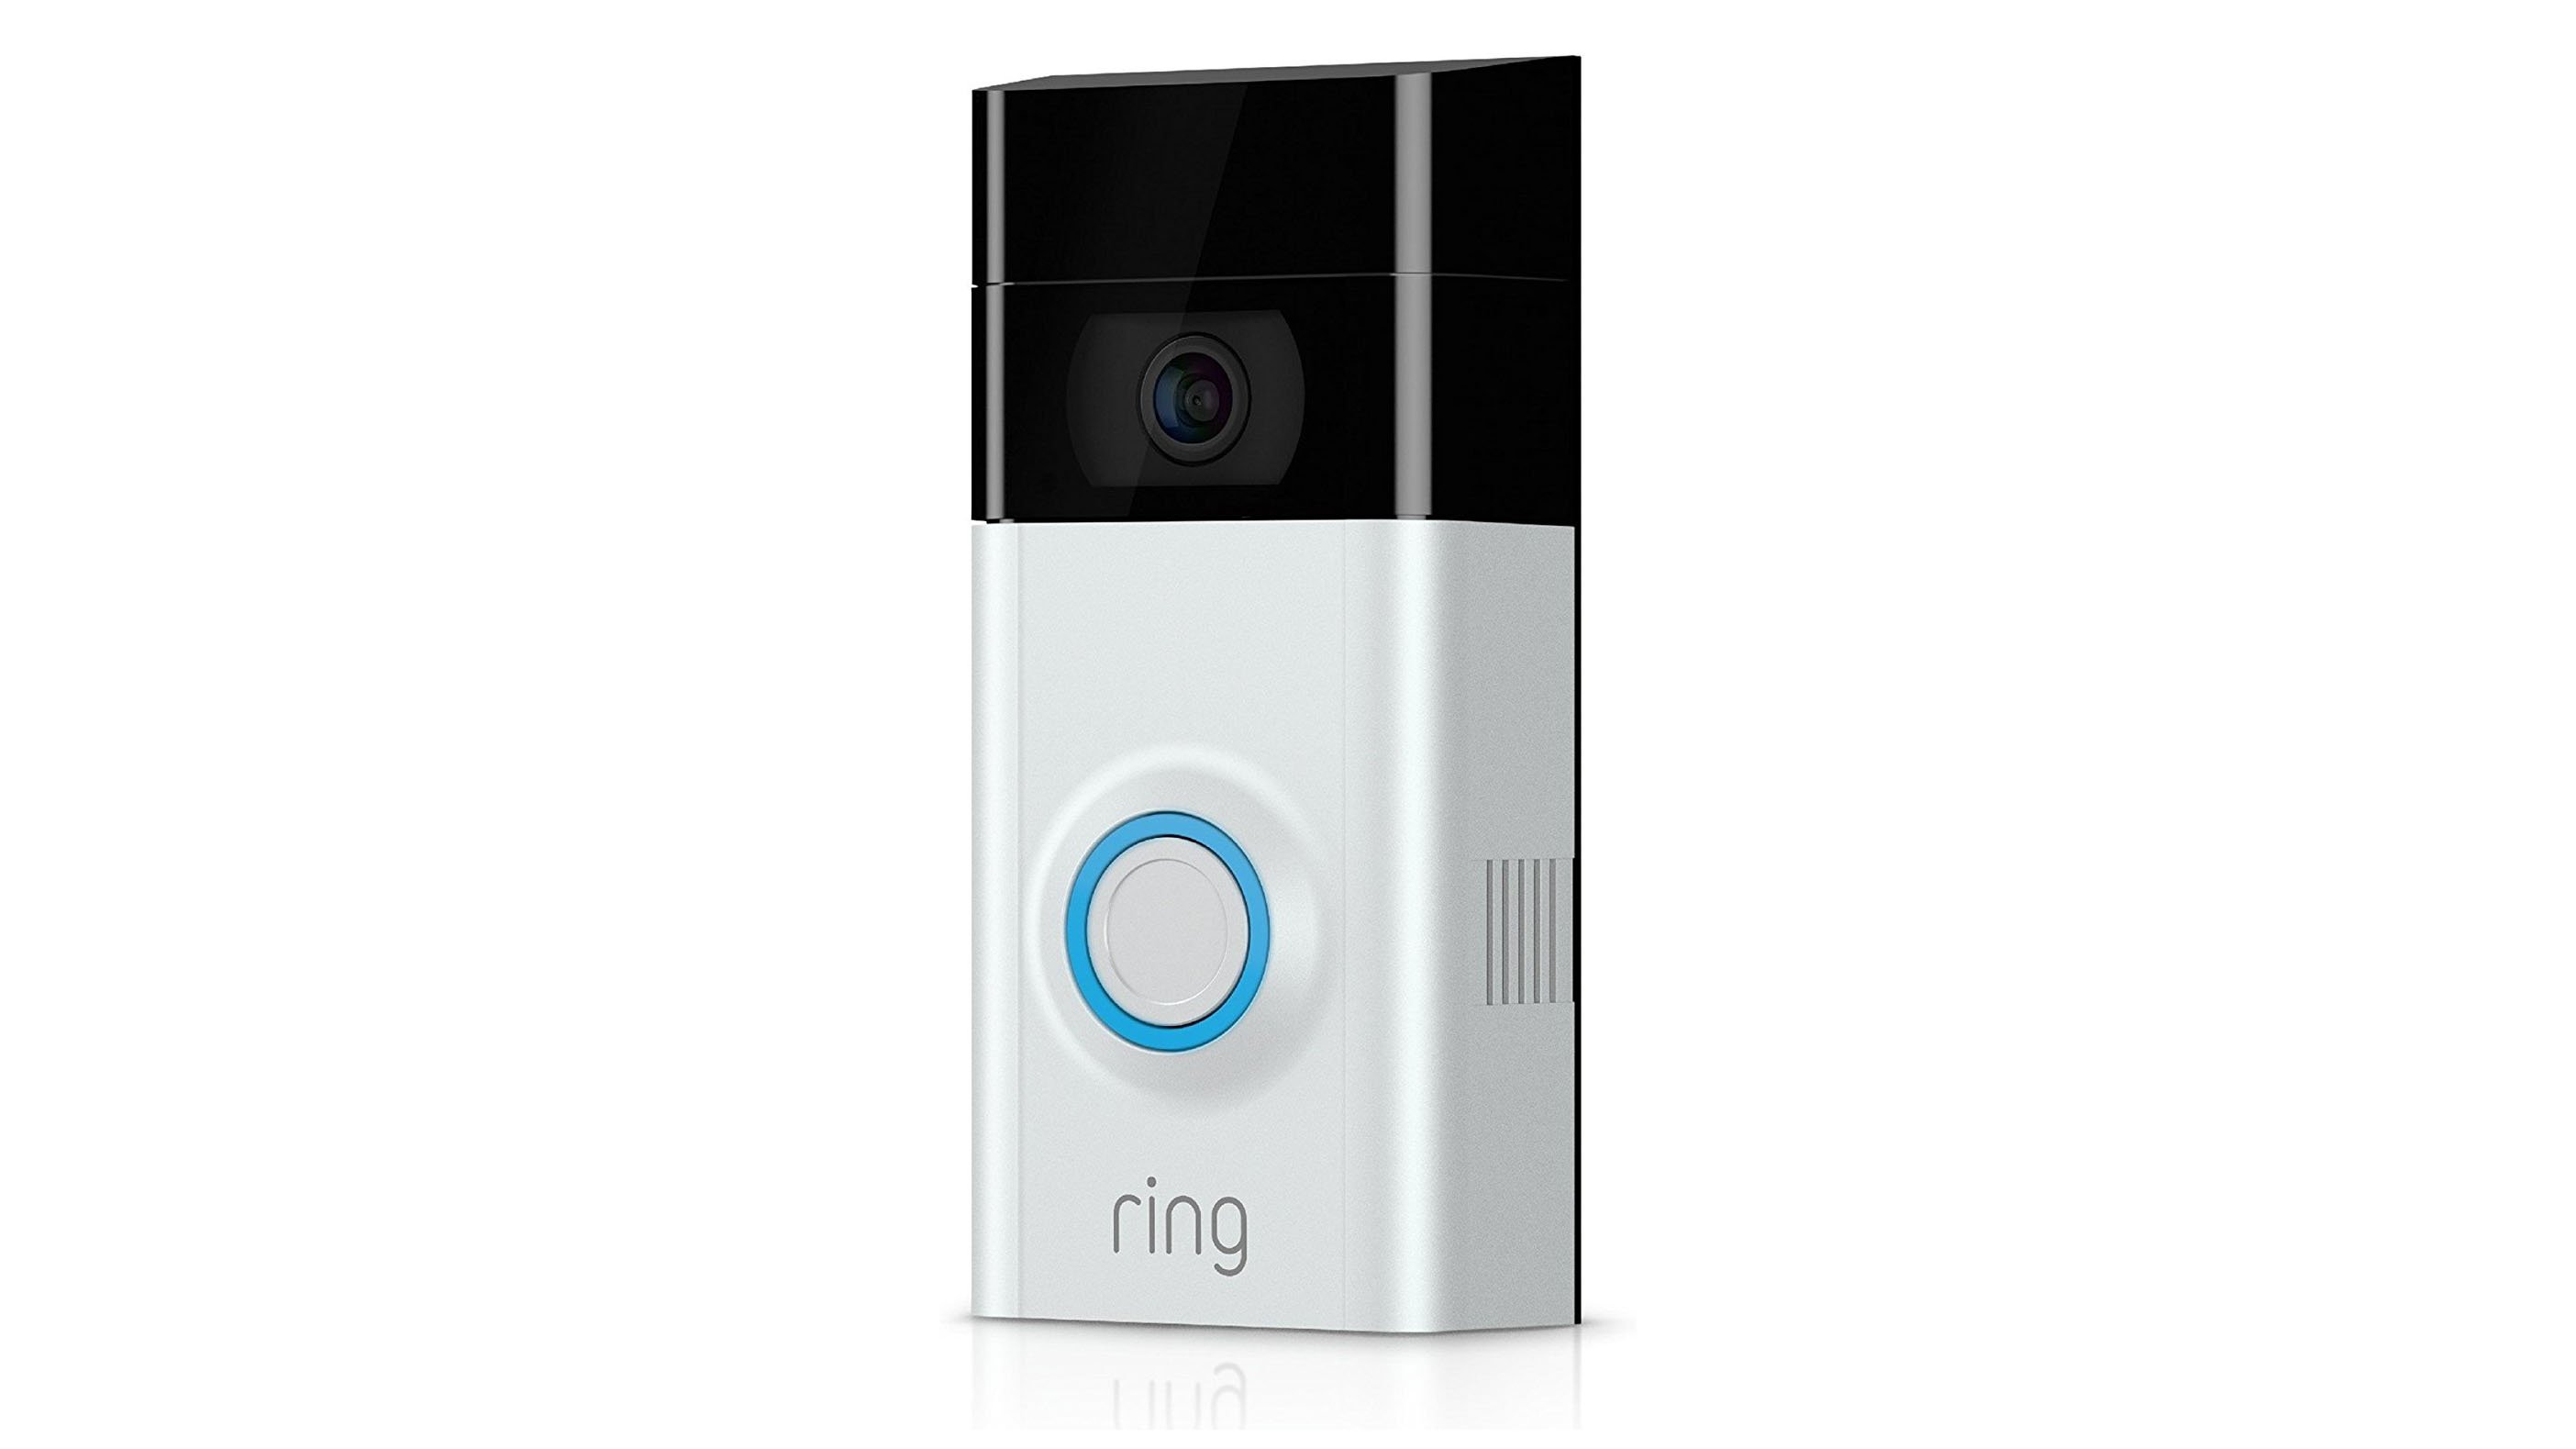 How to Connect a Ring Doorbell to WiFi? | Smart Home Devices